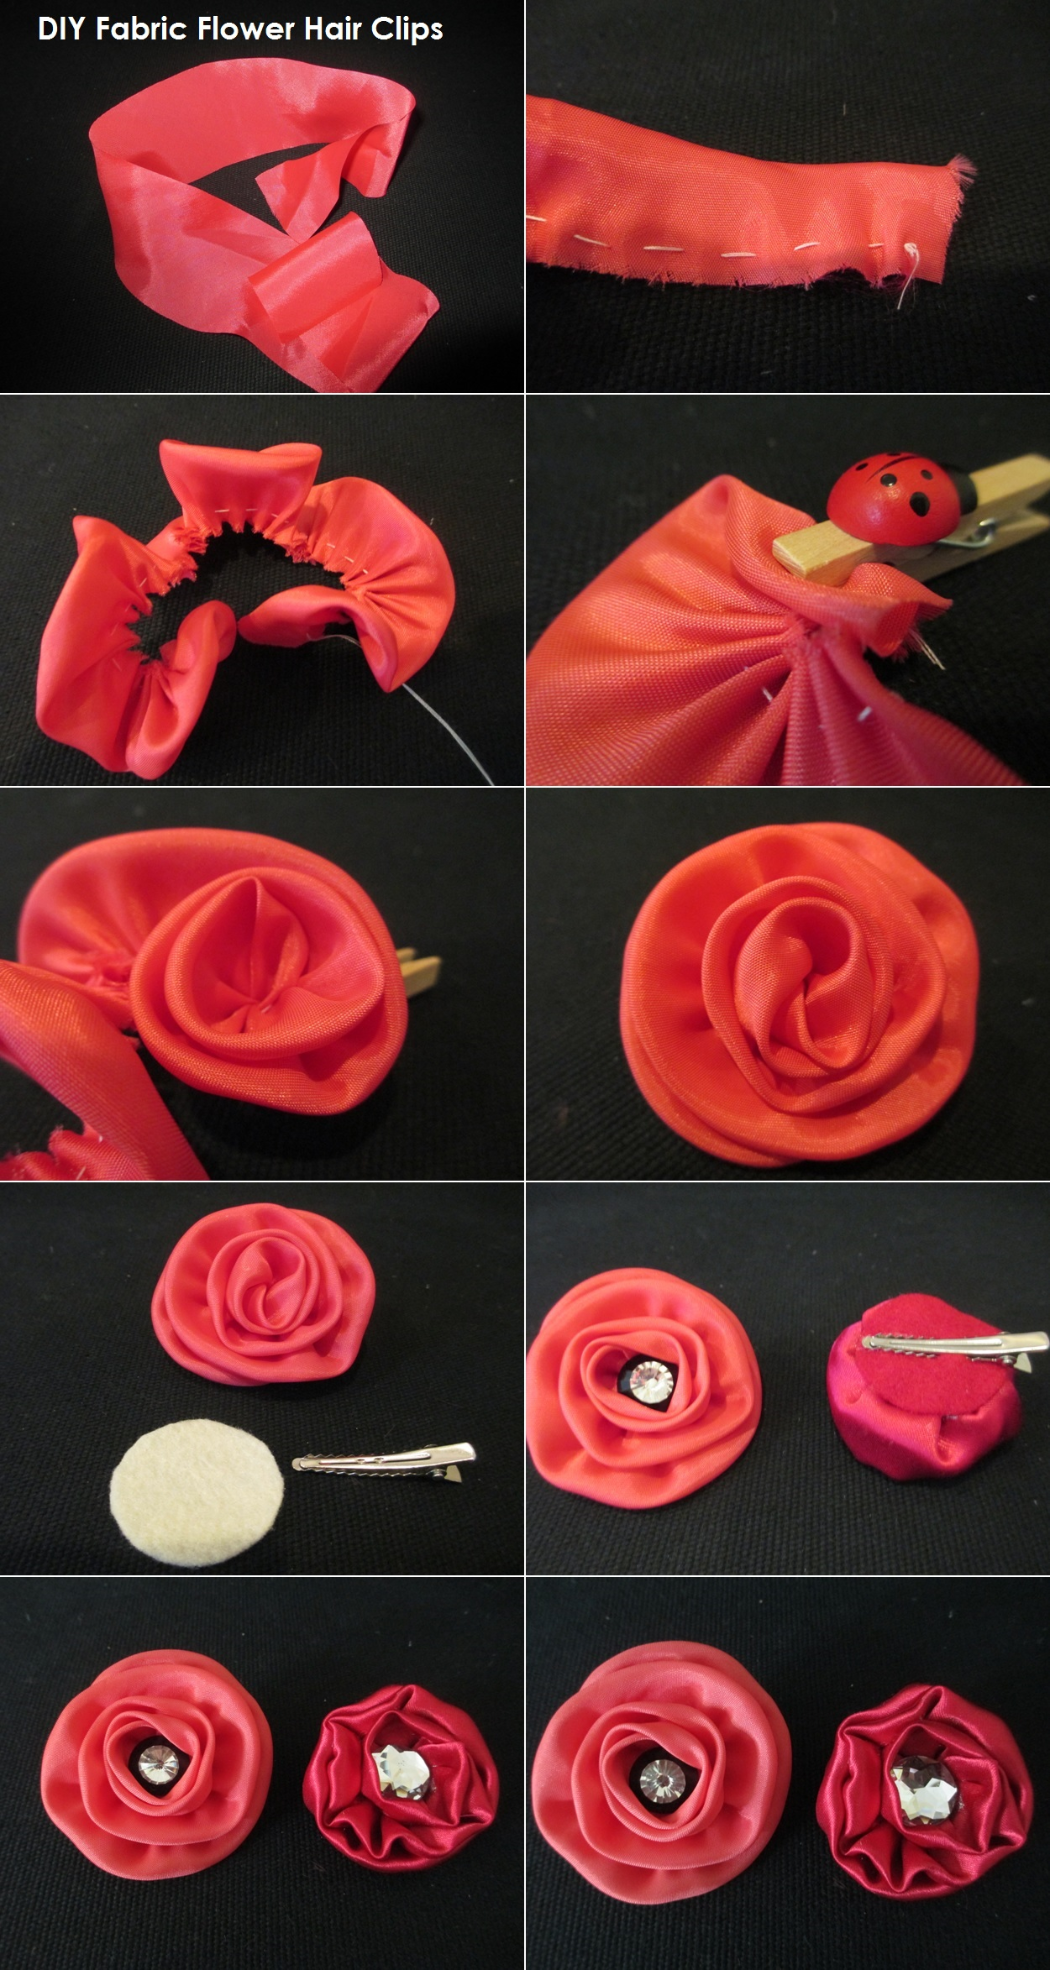 DIY Fabric Hair Clips Pictures, Photos, and Images for ...